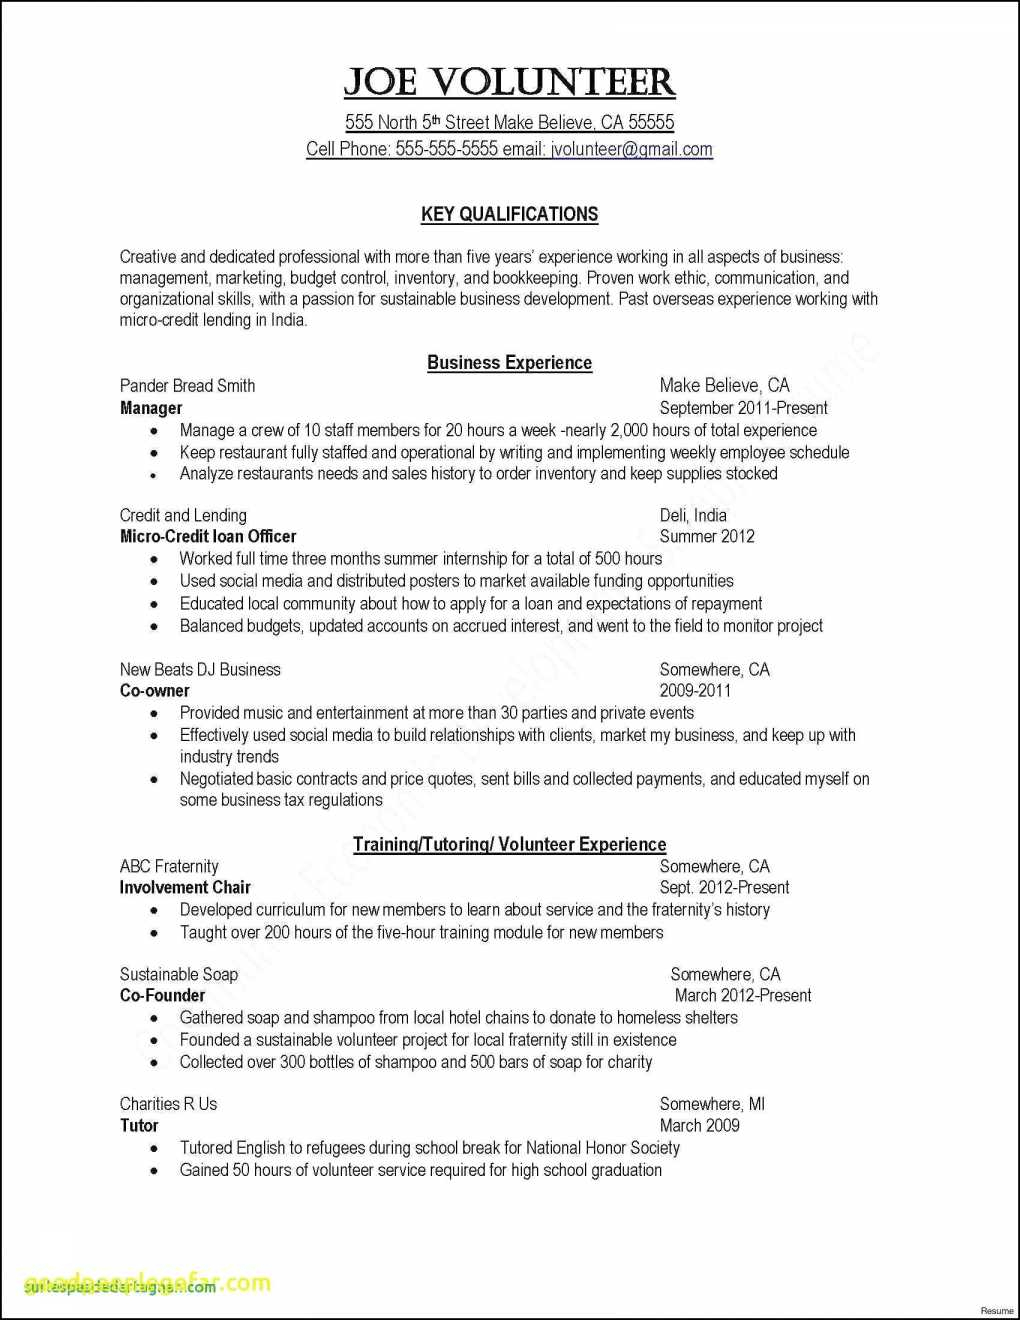 Startup Expenses Template Starting A Plumbing Business Beautiful And Business Start Up Budget Template